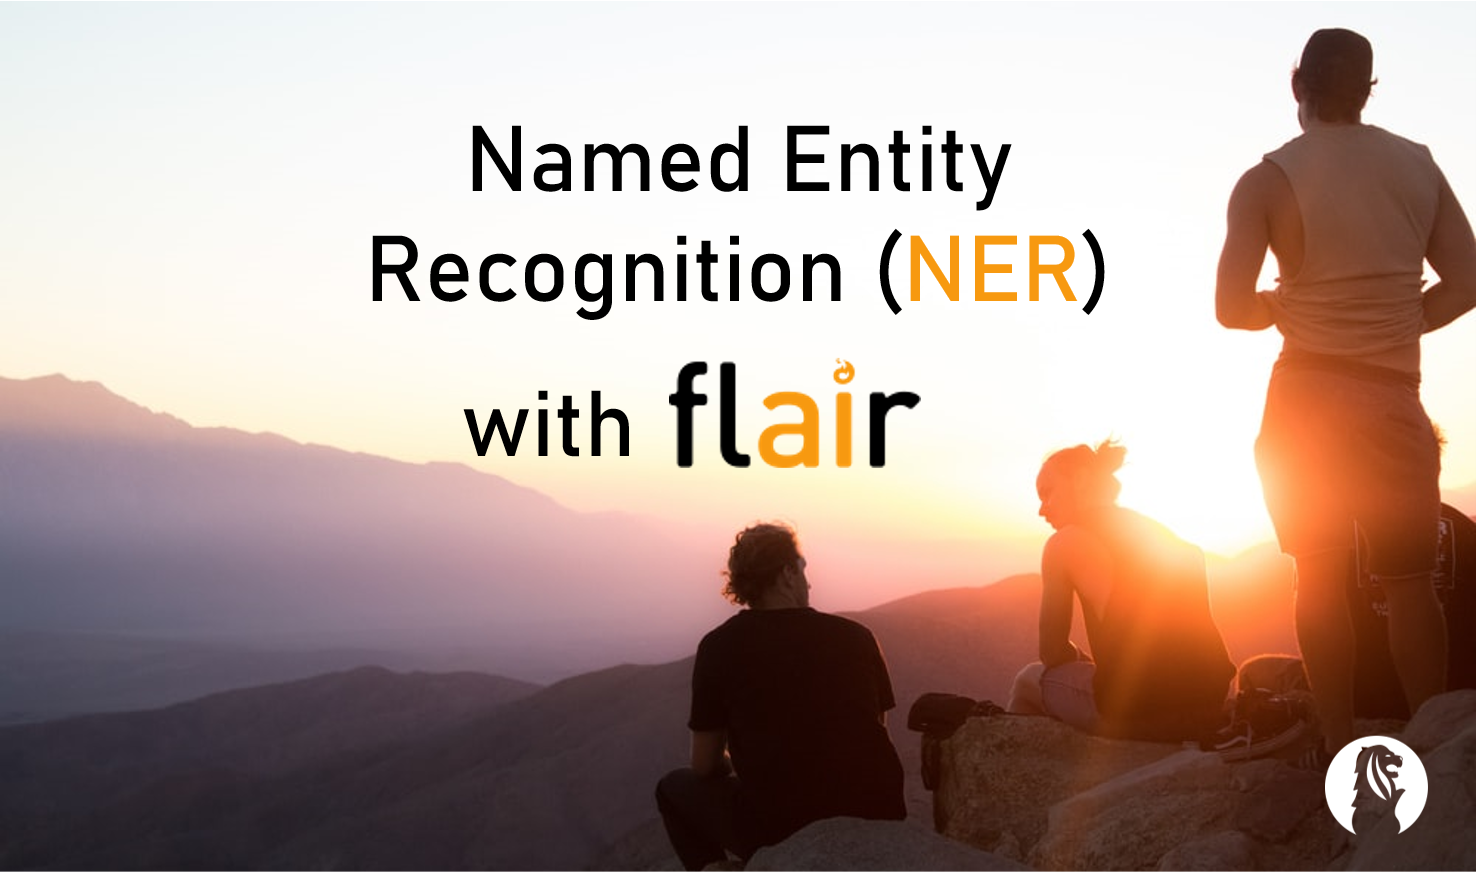 Named Entity Recognition (NER) Model Using FLAIR